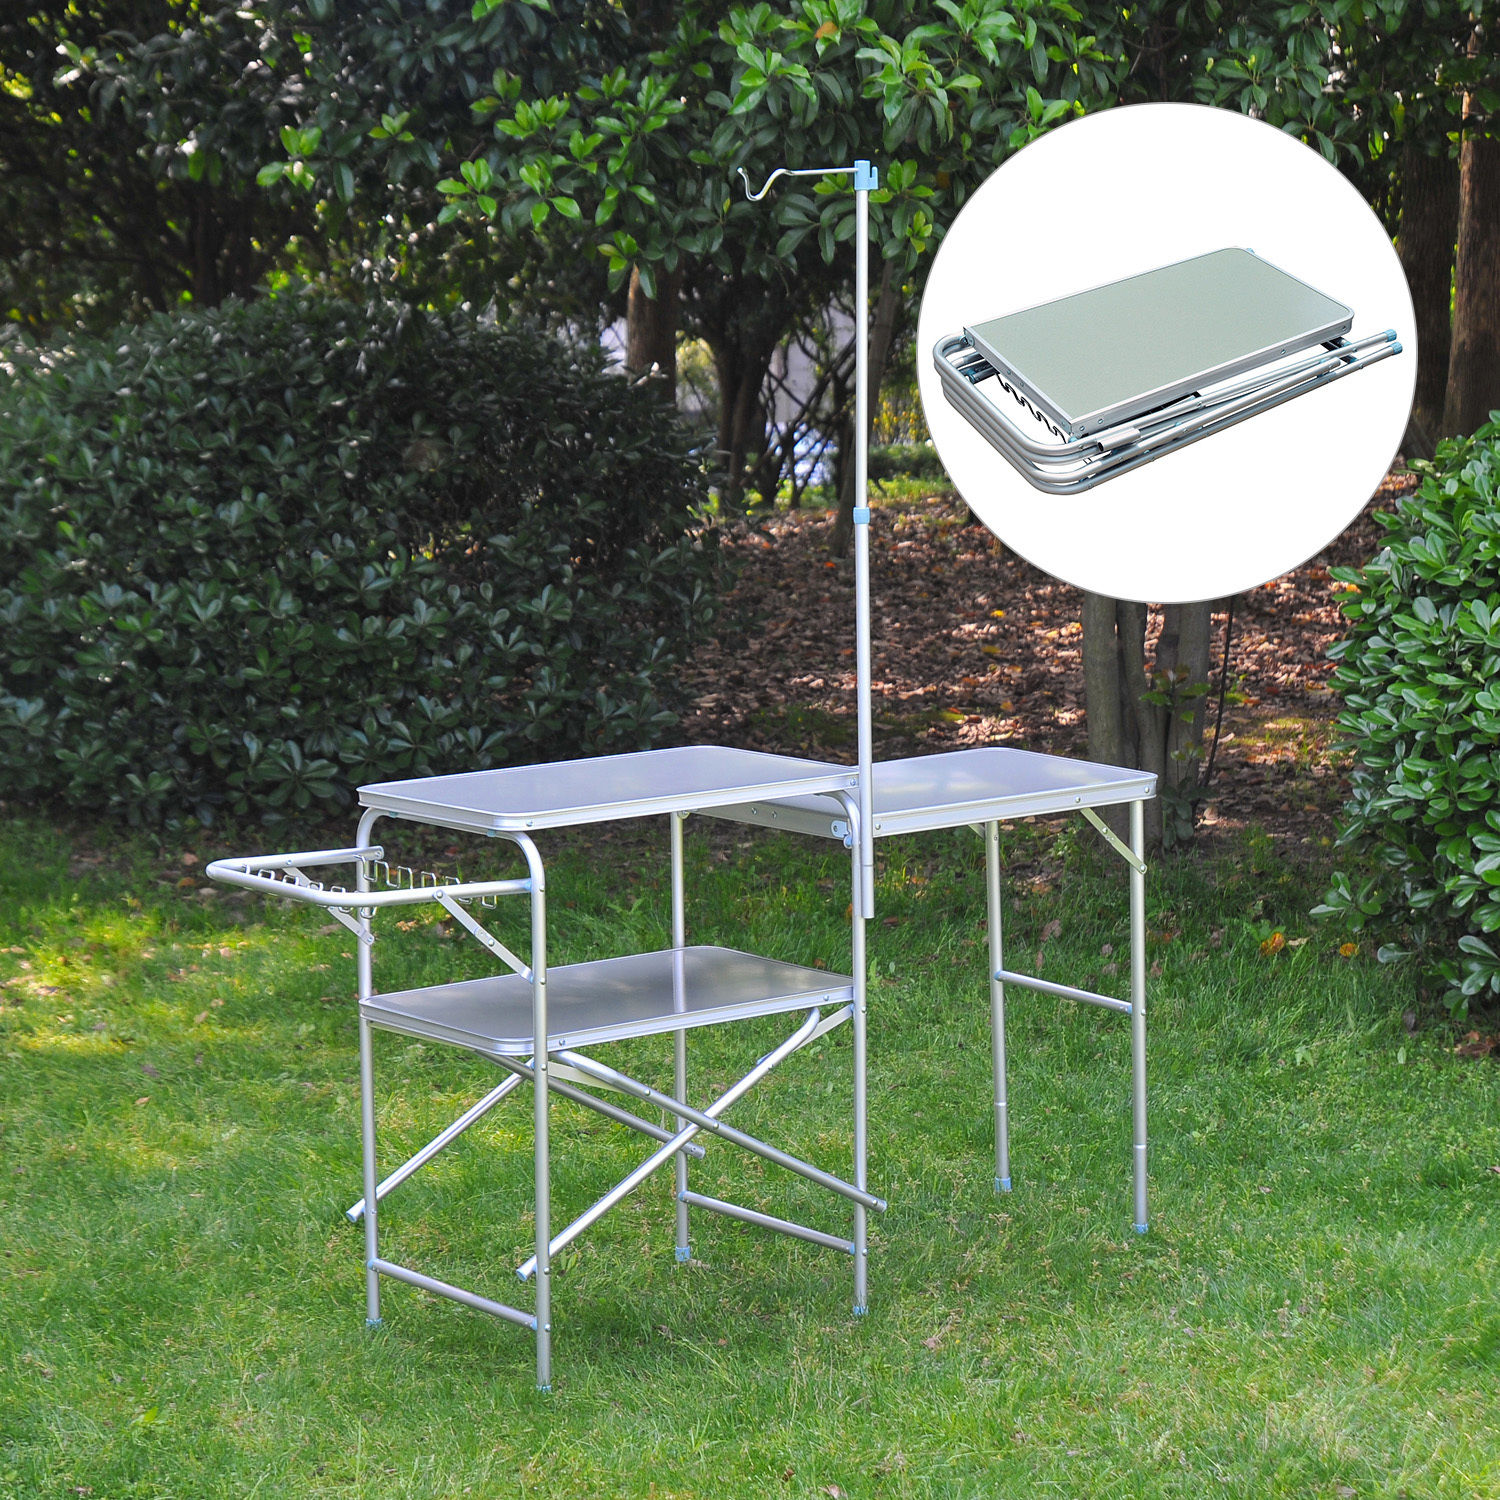 Camping Kitchen Center Stand Portable Folding Camp Cooking Aluminum